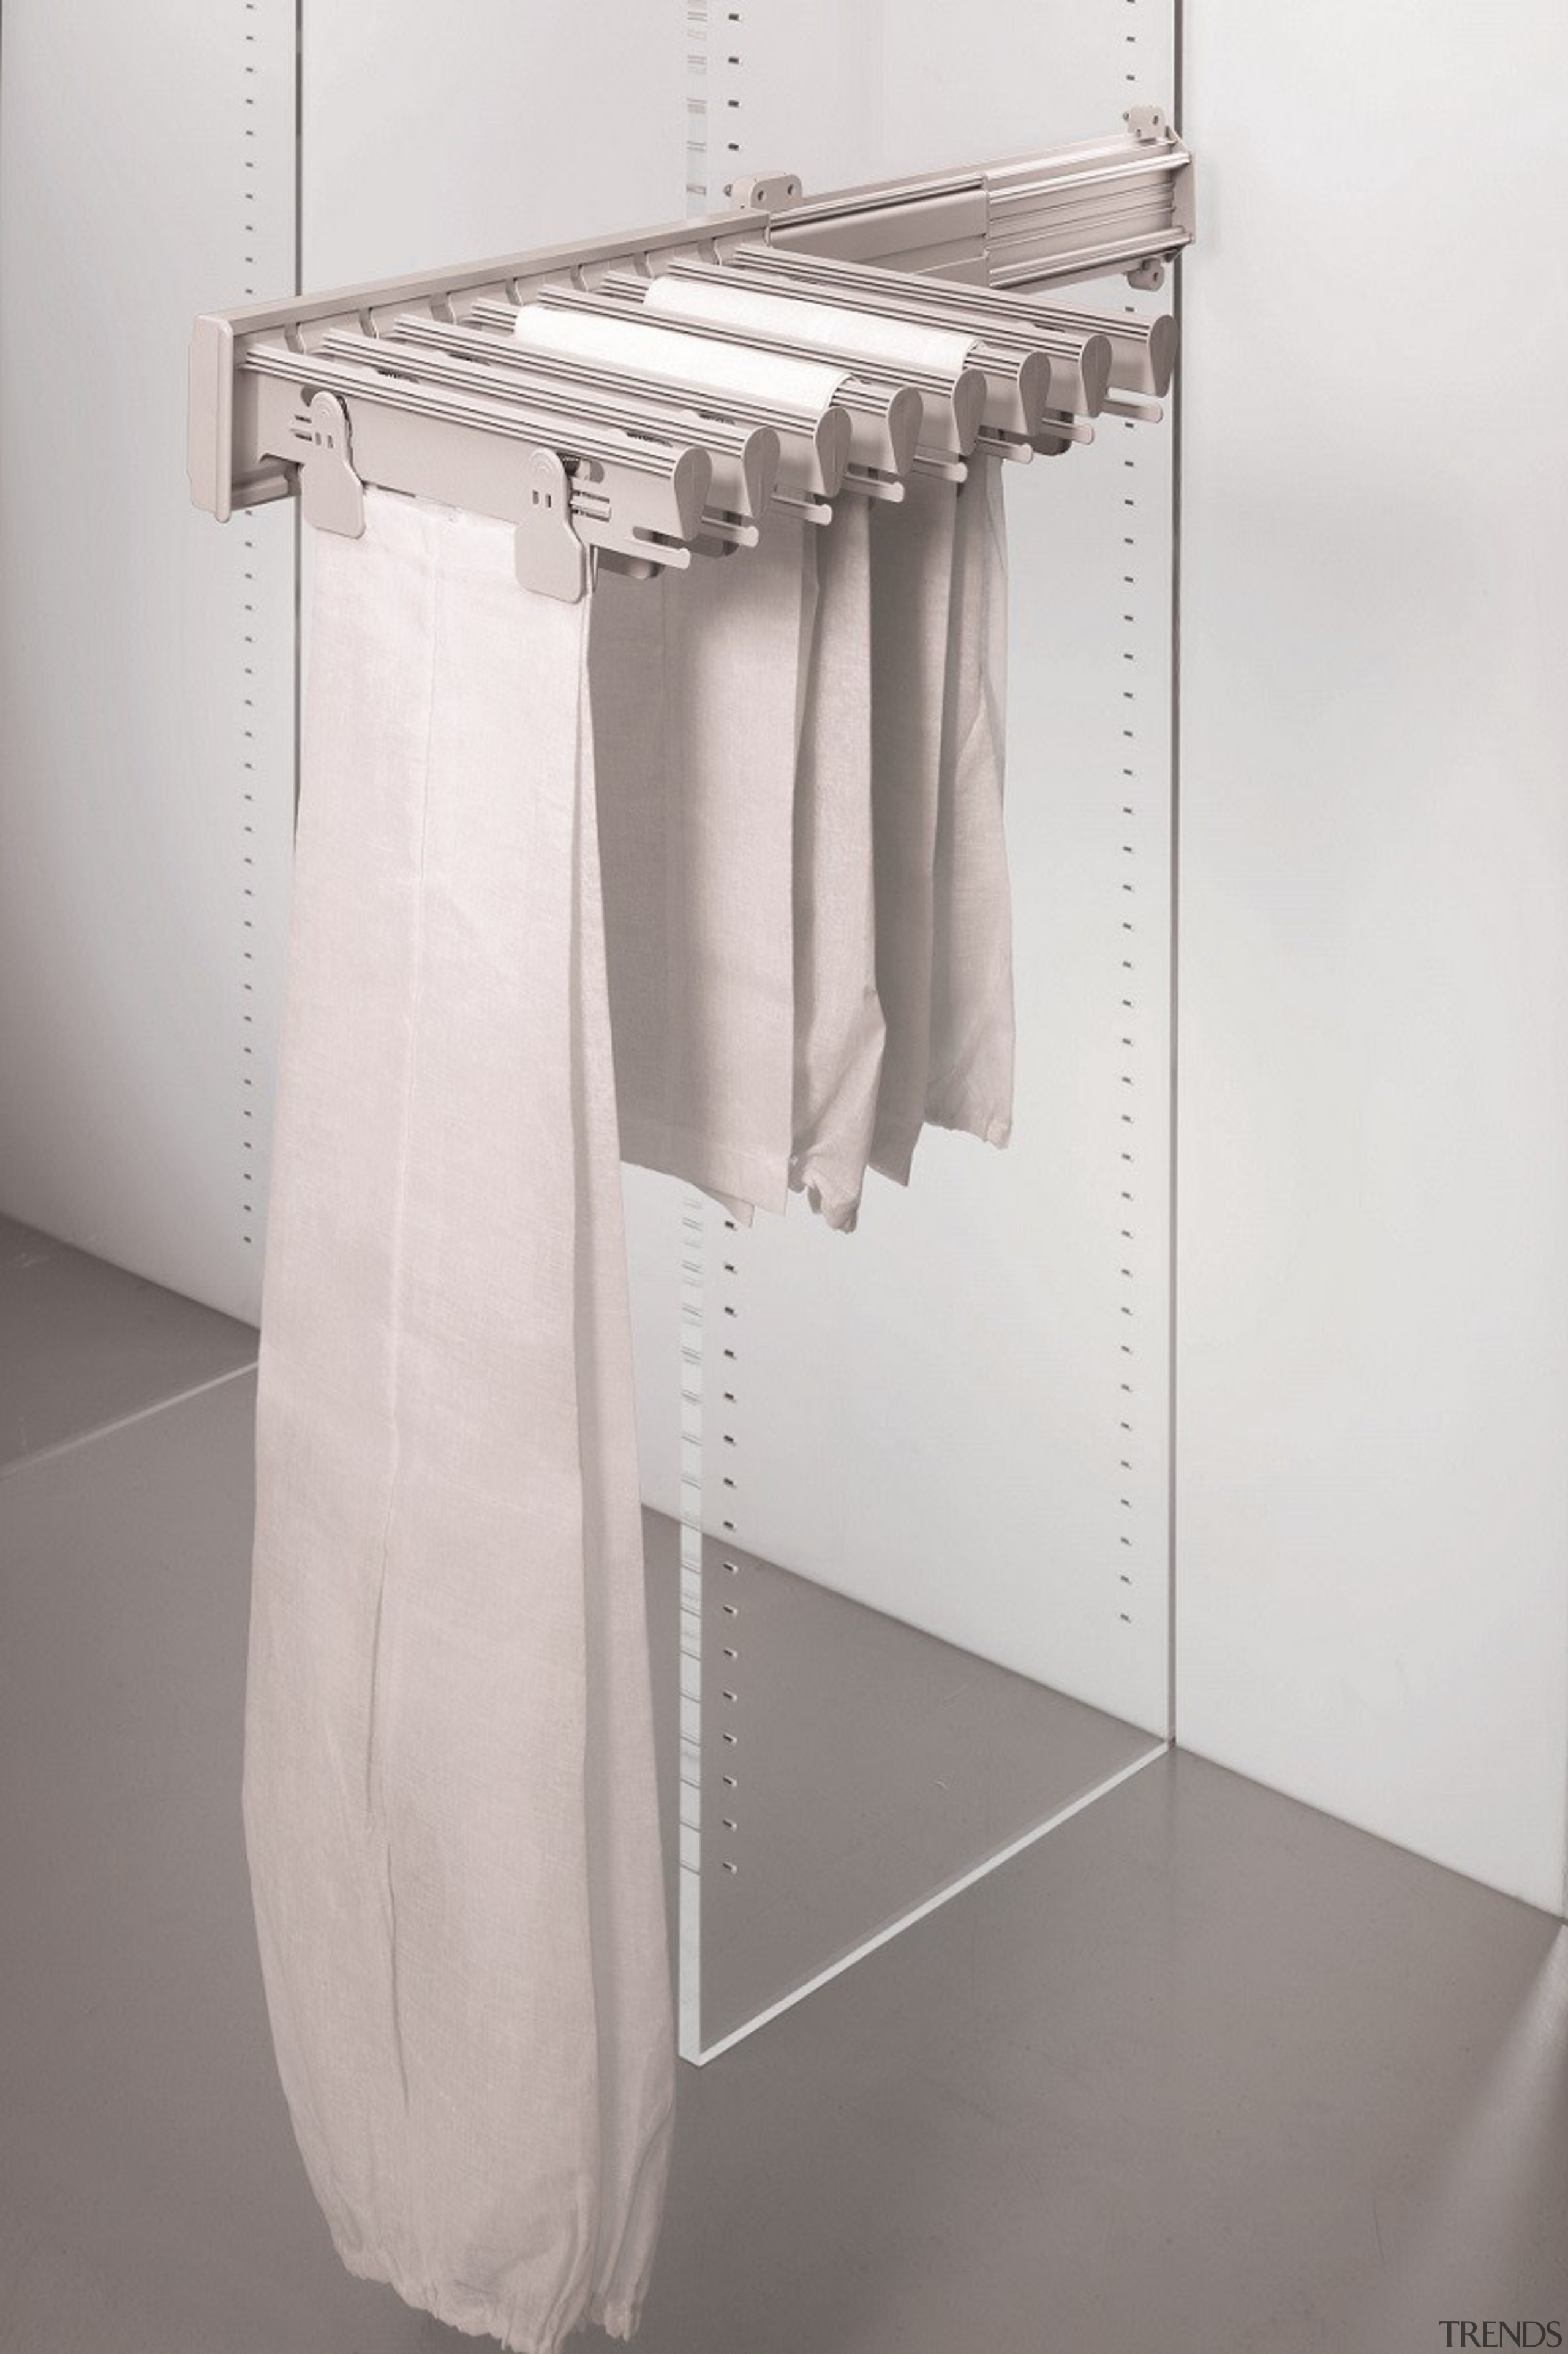 Ambos Side Mounted Wardrobe Fittings are ideal for angle, clothes hanger, furniture, plumbing fixture, product, product design, white, gray